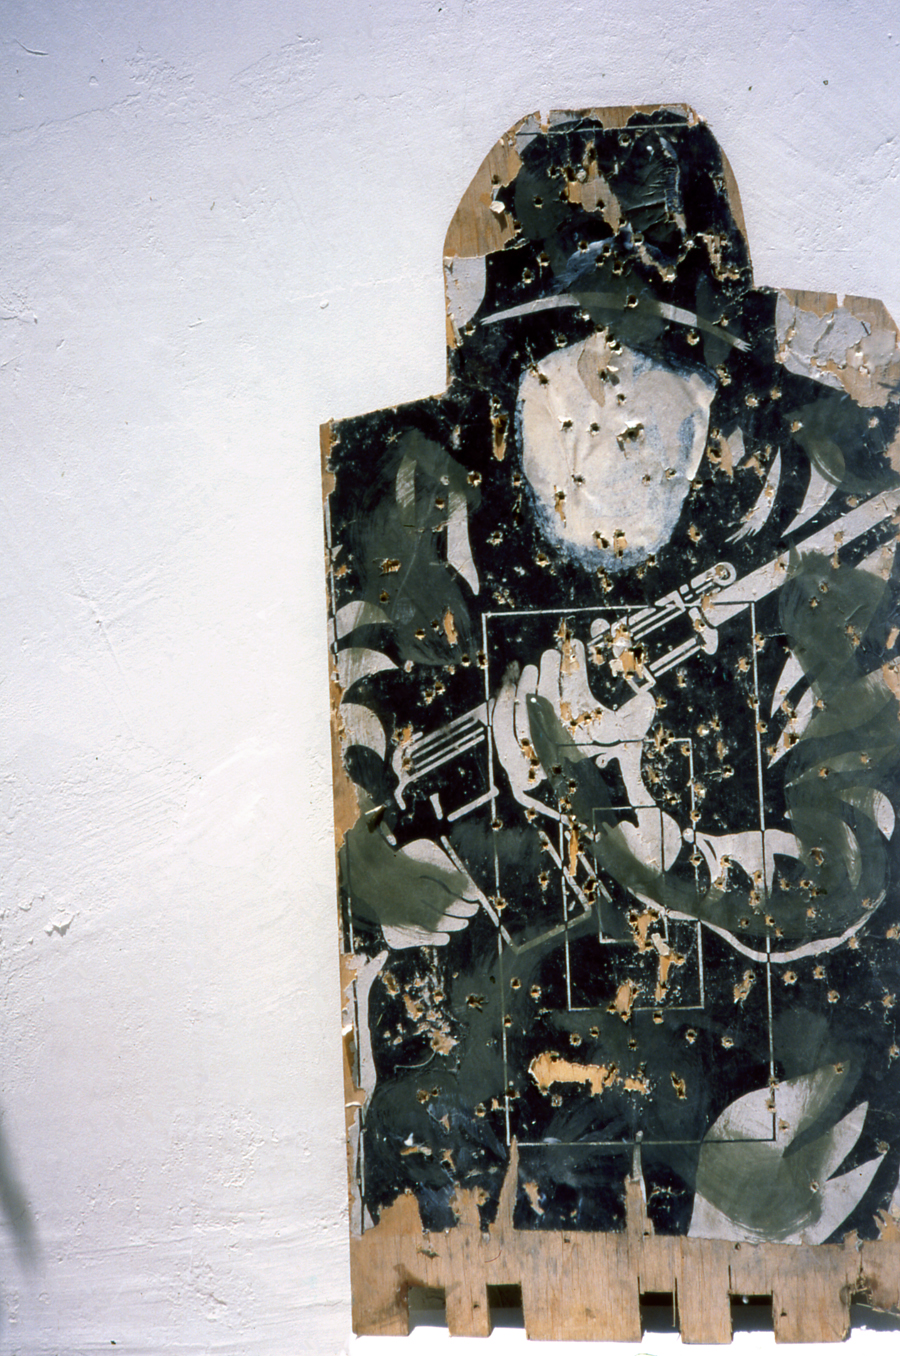 An image of soldier as a target